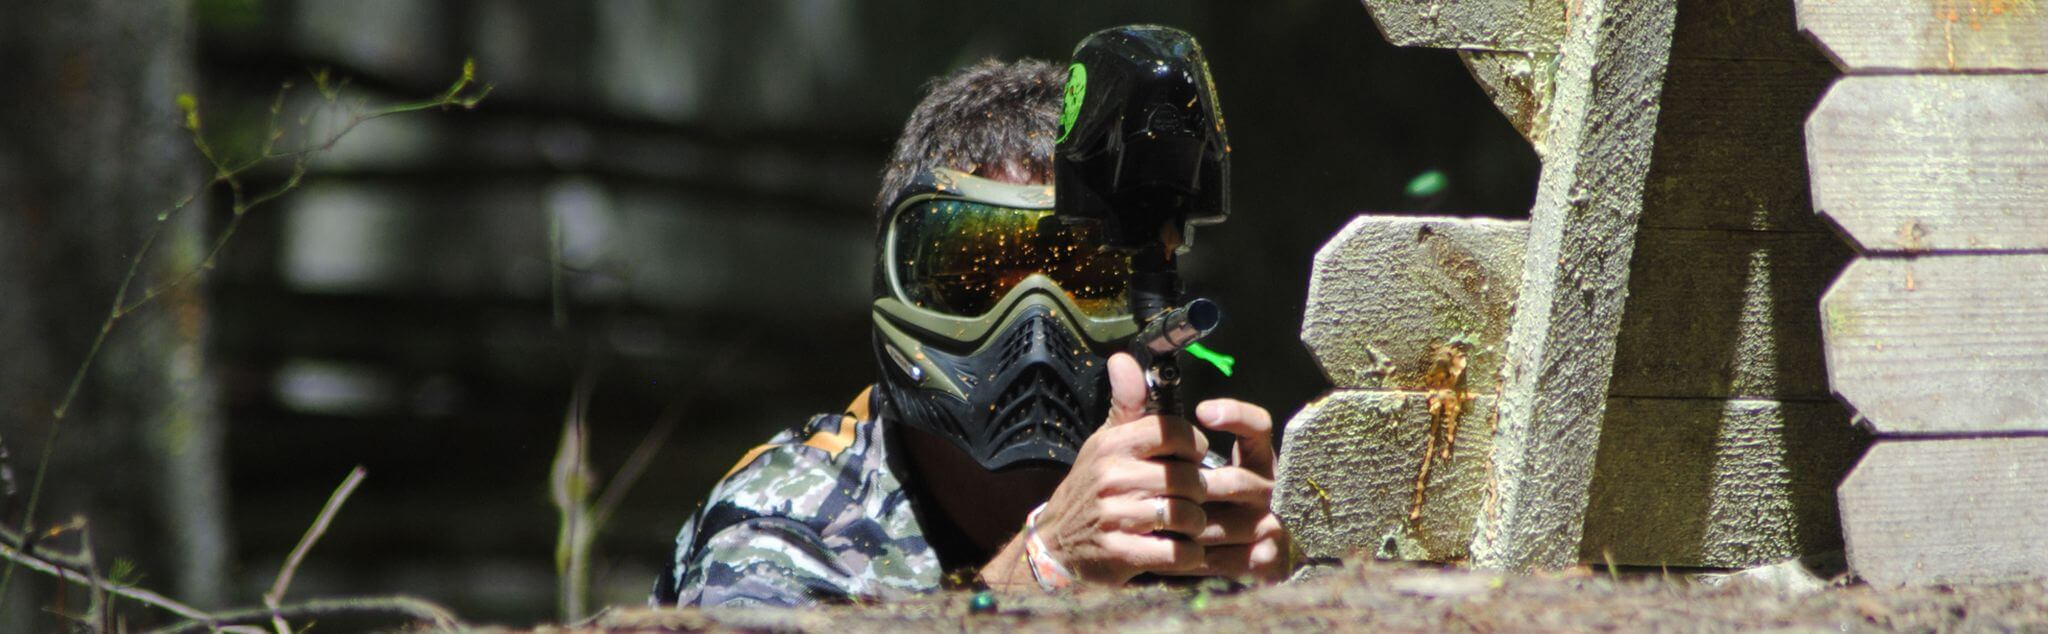 Paintball en Quentar